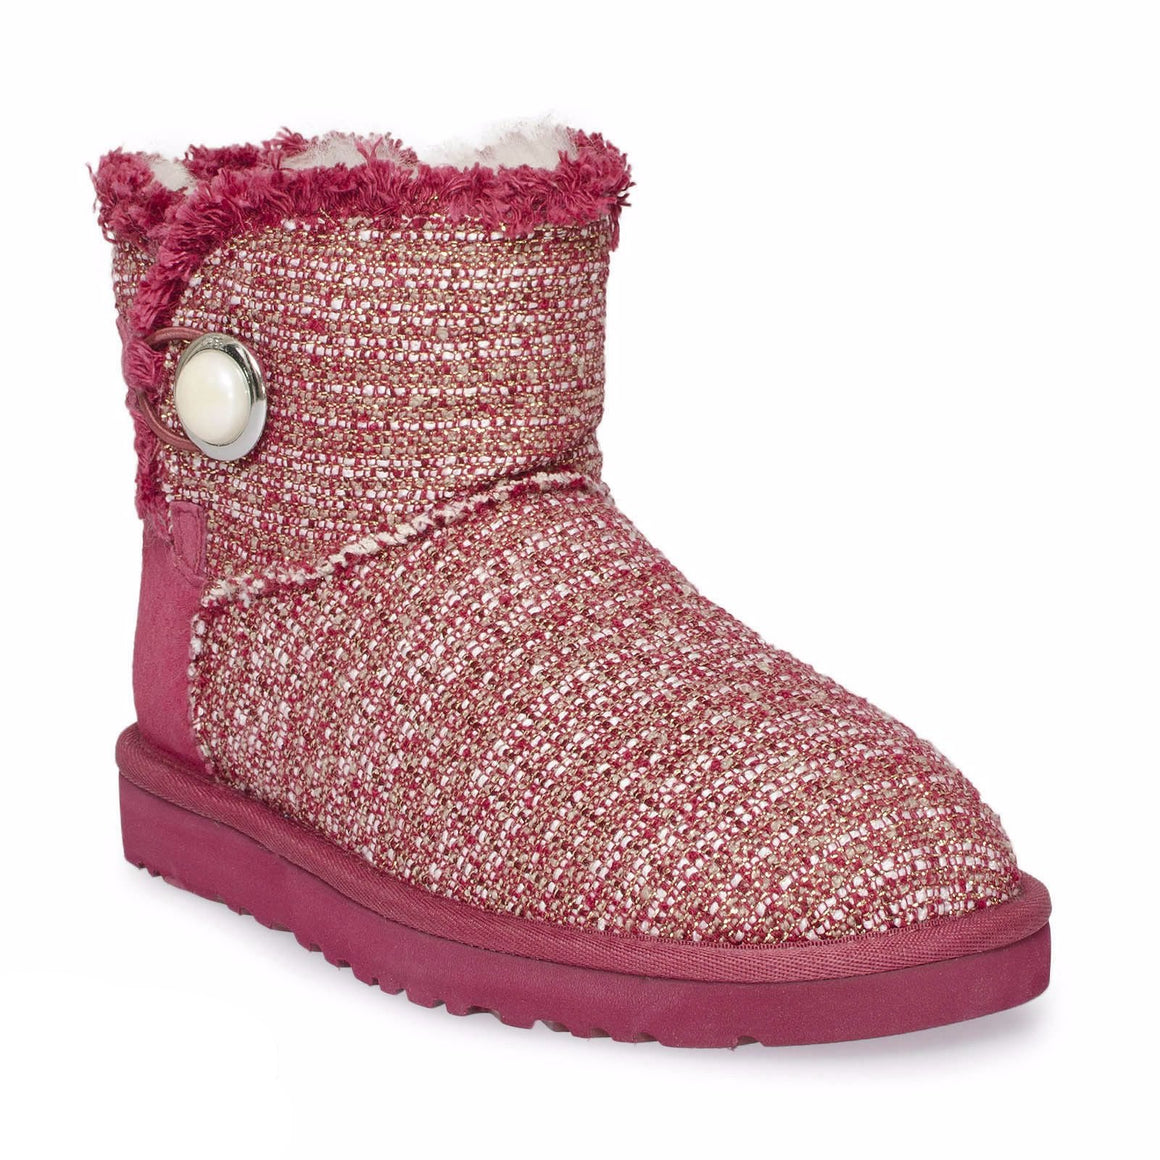 UGG Mini Bailey Burgundy Wine Boots